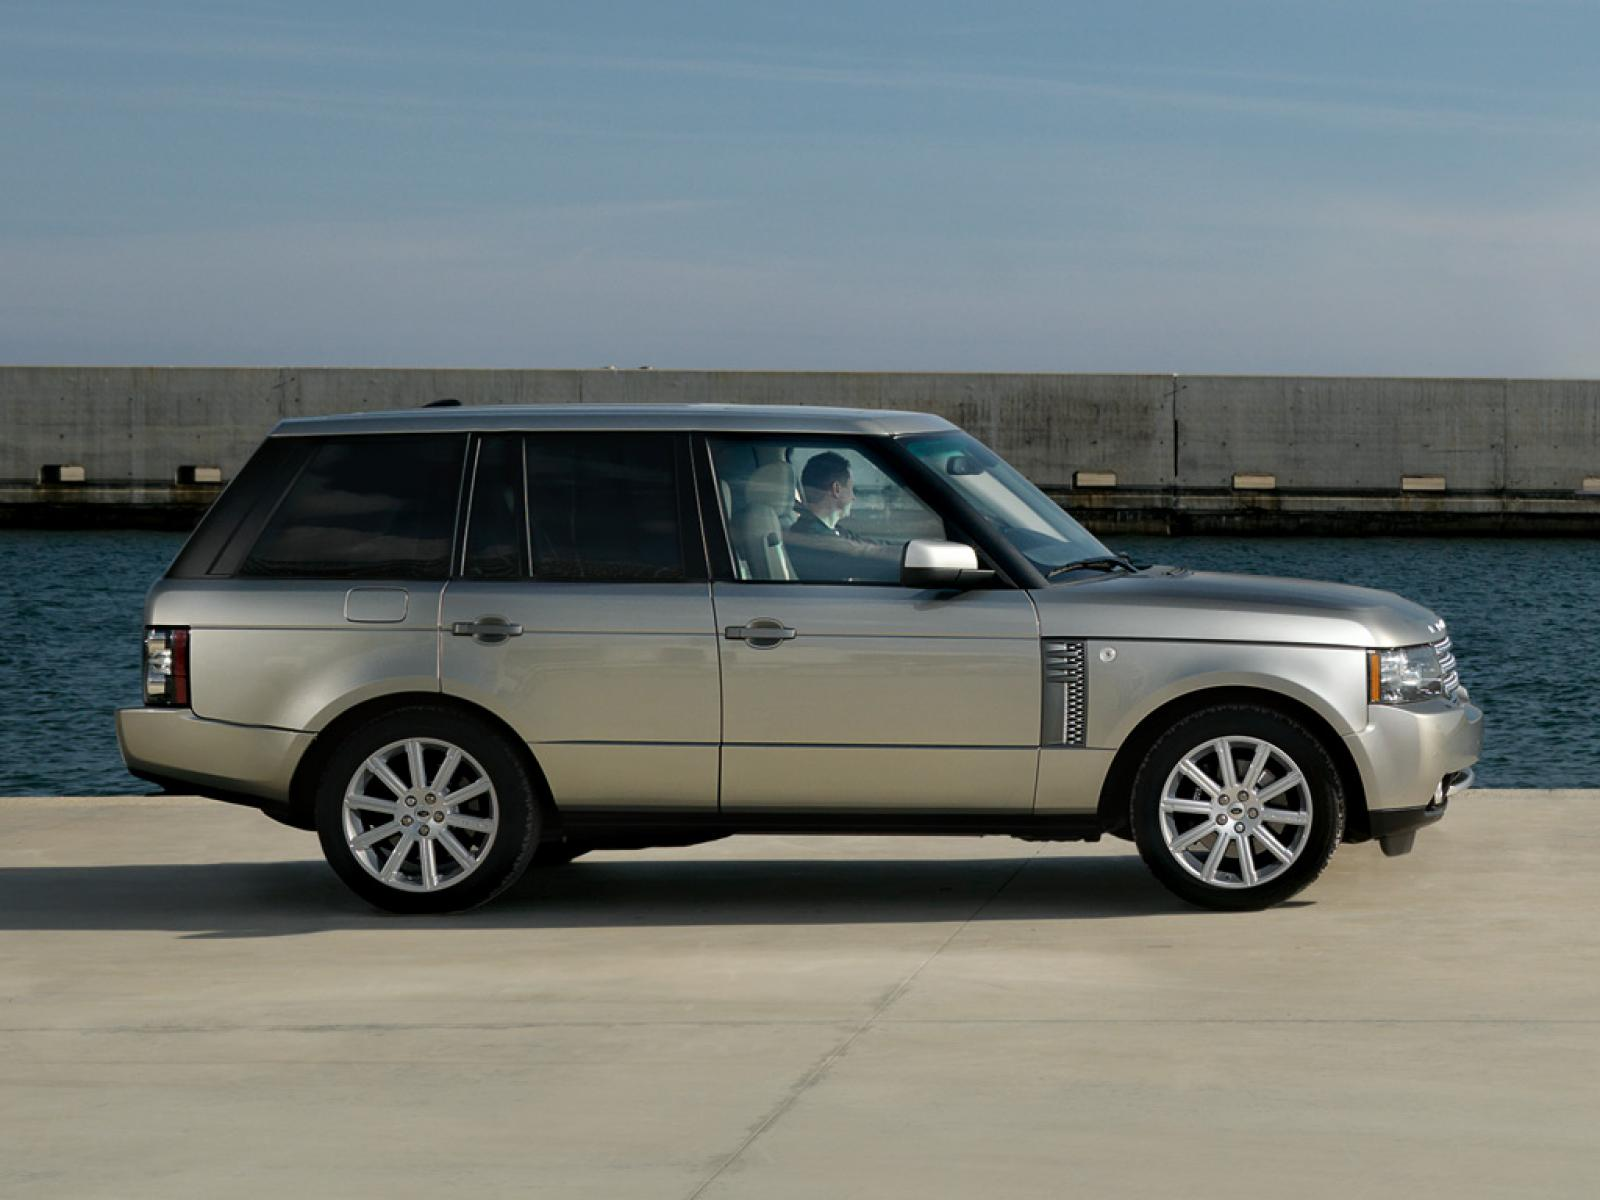 2009 land rover range rover information and photos zombiedrive. Black Bedroom Furniture Sets. Home Design Ideas